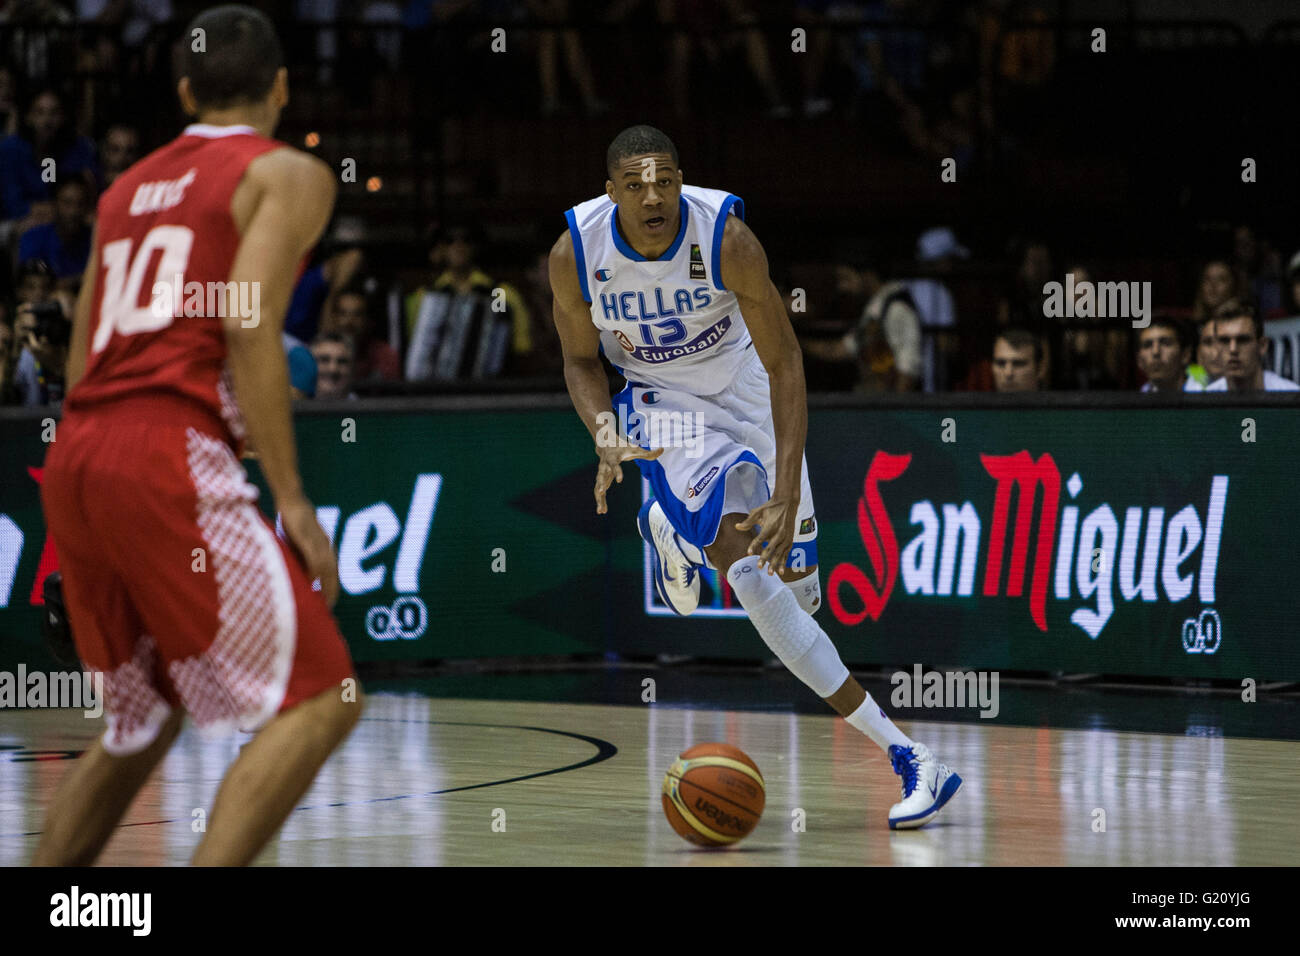 Giannis Antetokounmpo, player of Greece, drives the ball during FIBA Basketball World Cup 2014 Group Phase match, - Stock Image